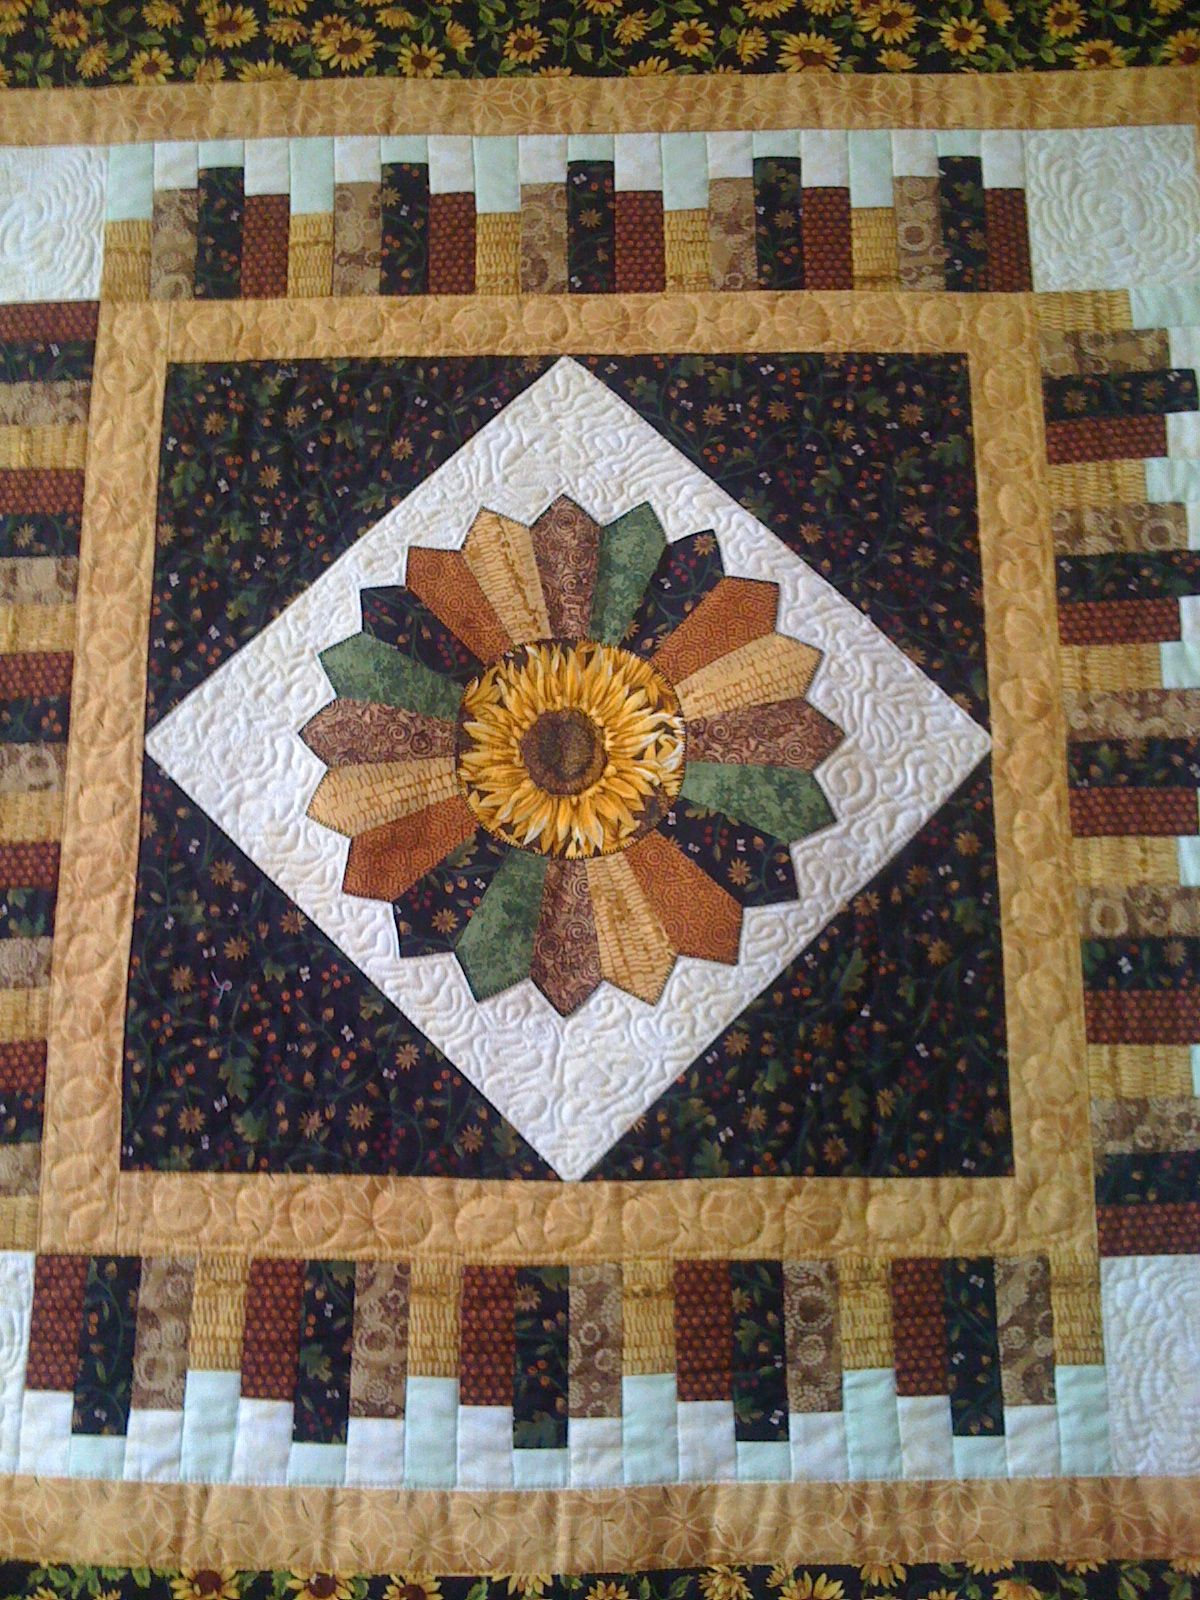 Sunflowers with piano keys border. | Quilt Borders | Pinterest ... : quilt borders pinterest - Adamdwight.com